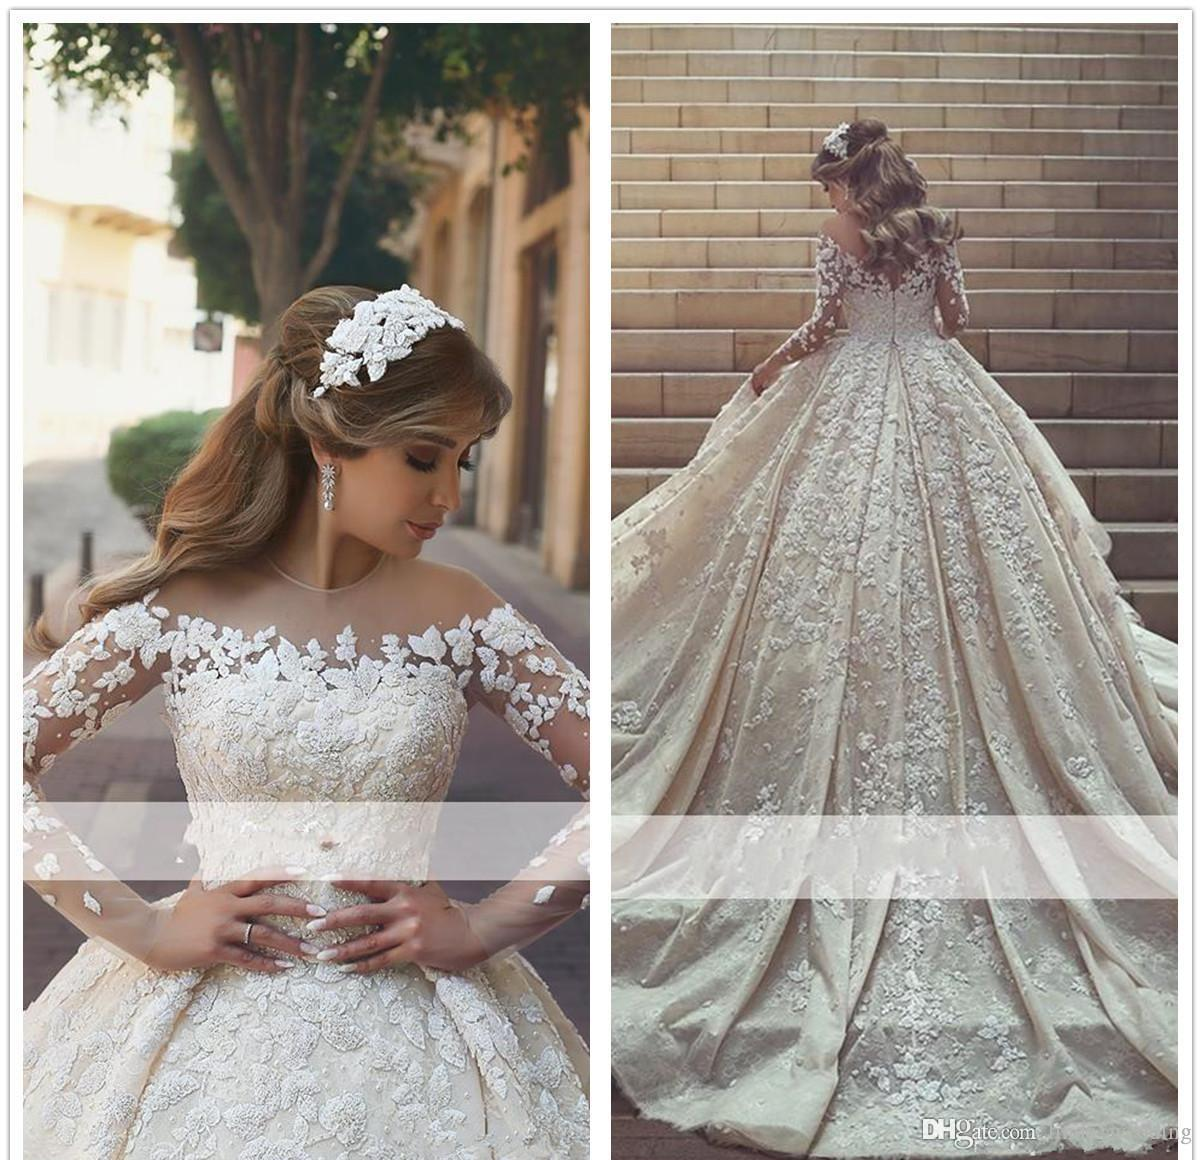 2019 Arabic Princess Sheer Long Sleeves Wedding Dress Ball Gown Lace Appliques Church Formal Bride Bridal Gown Plus Size Custom Made